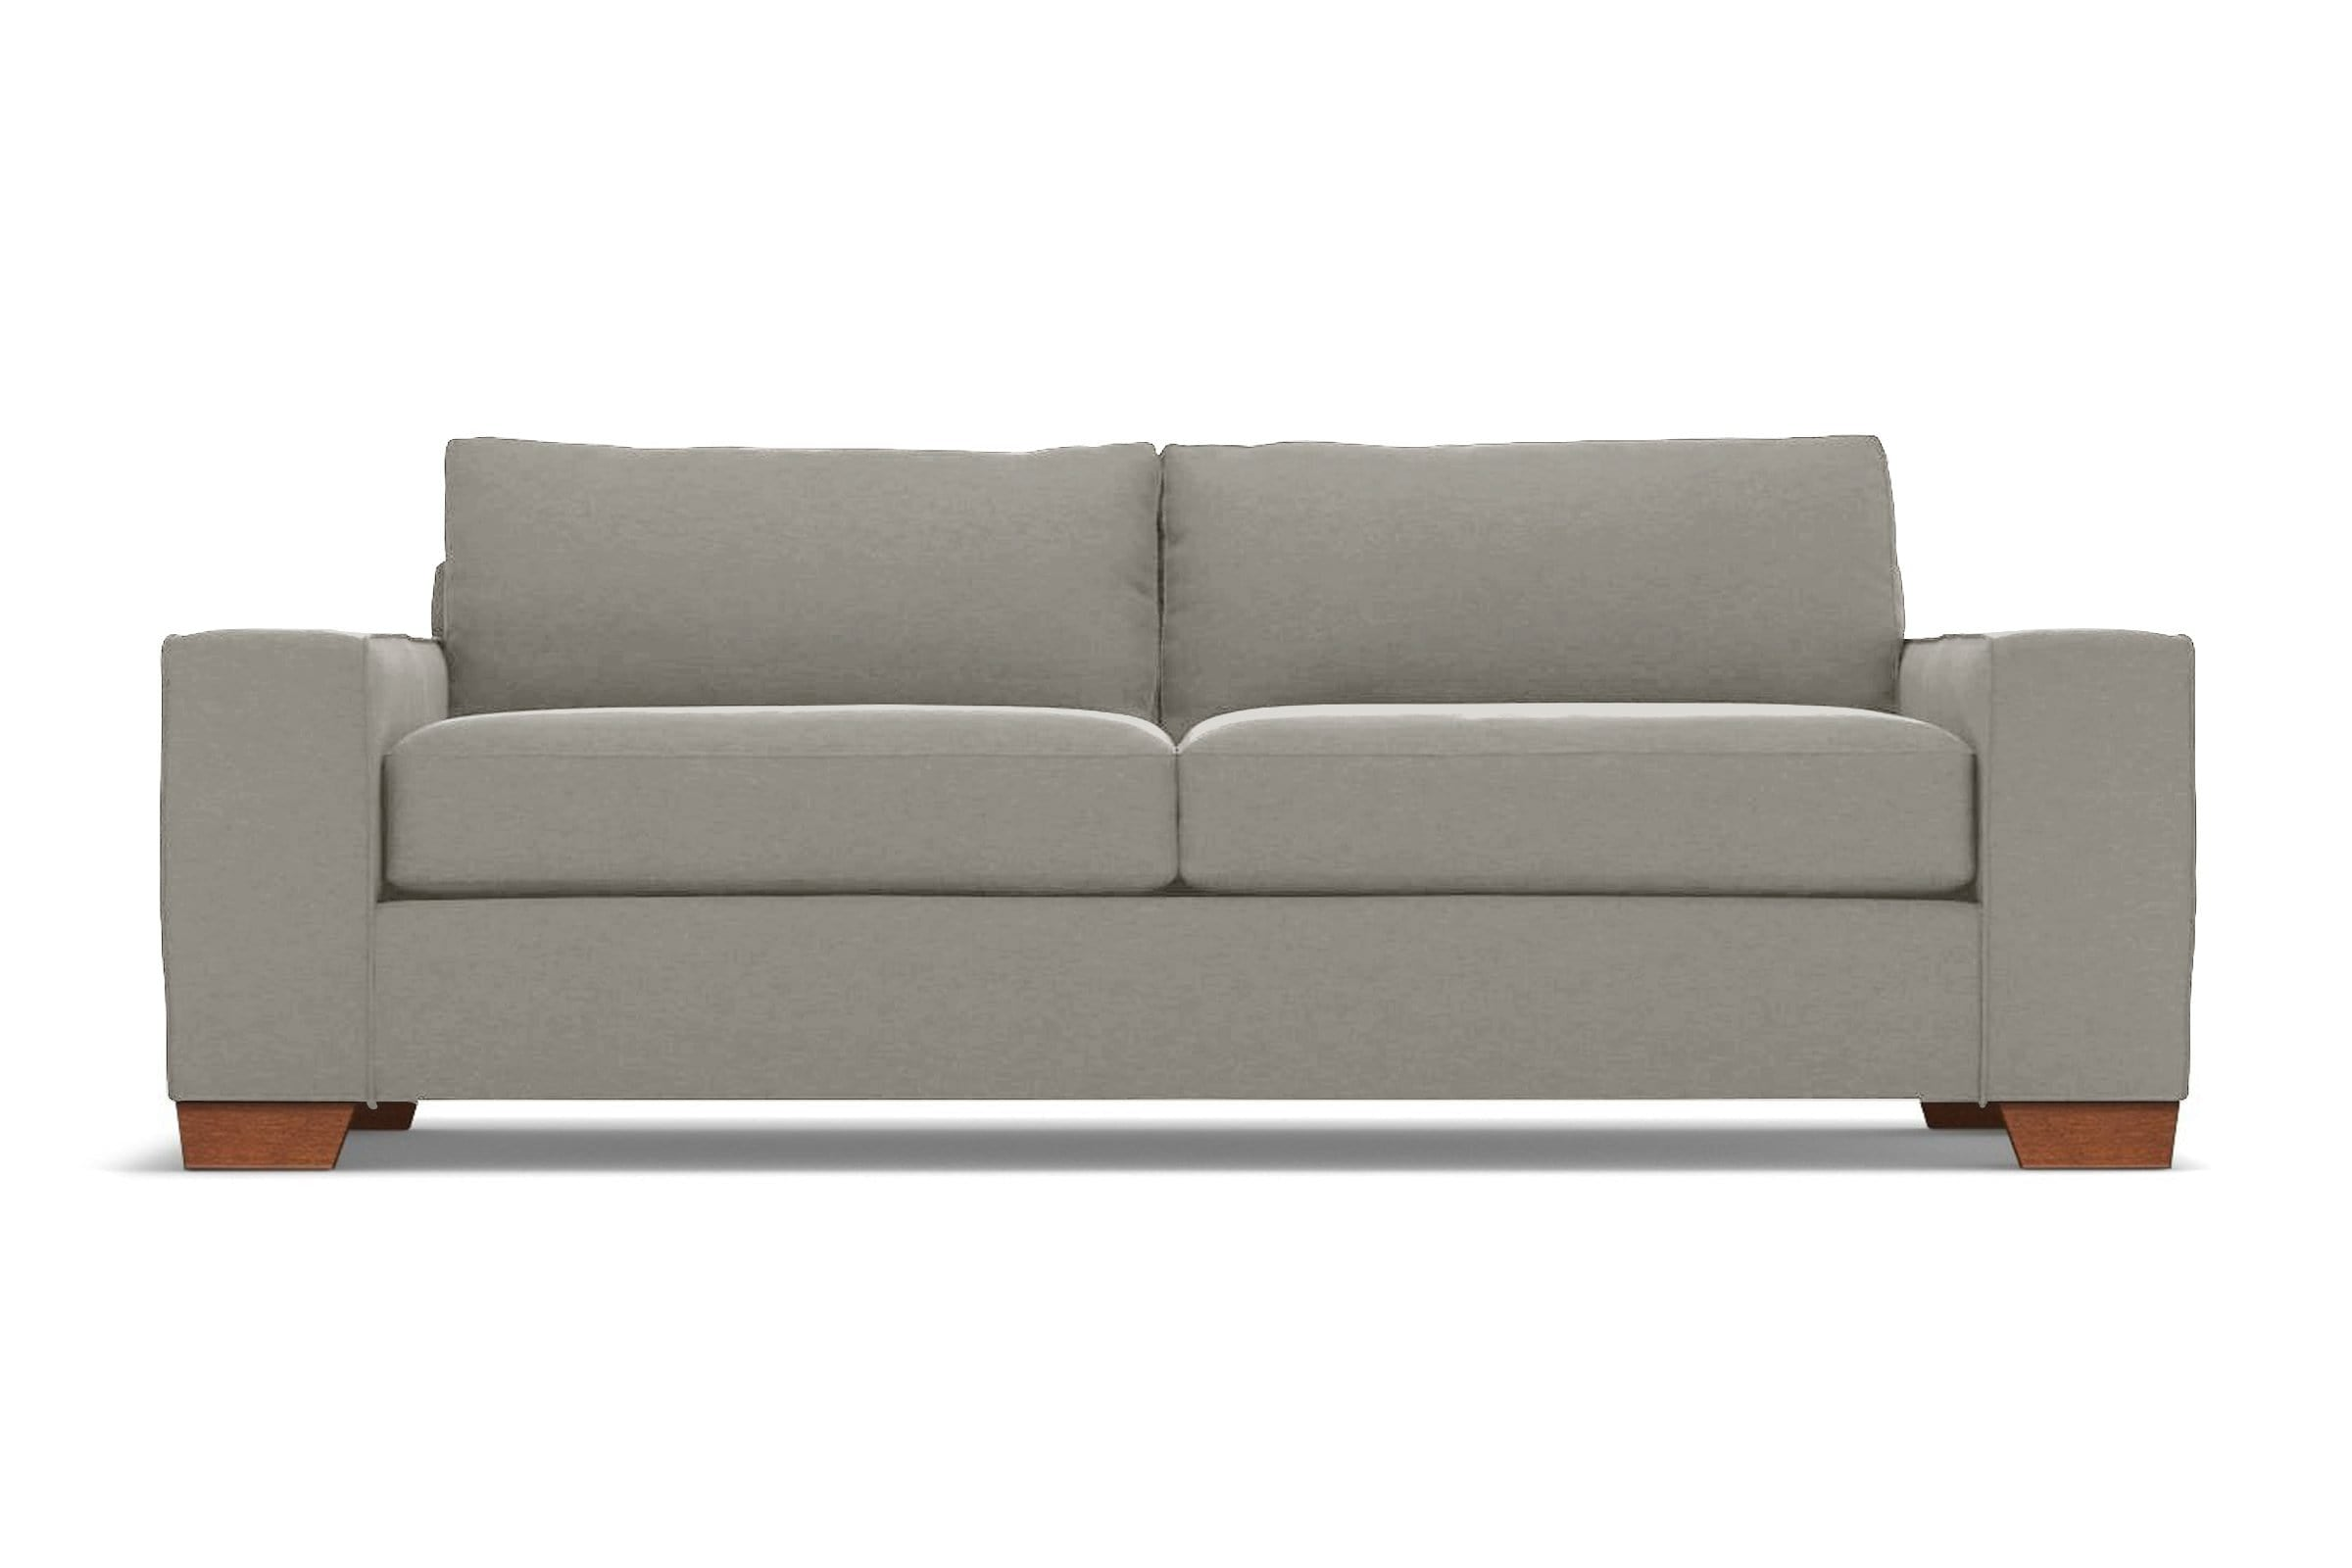 Melrose Sofa - Tan Velvet - Modern Couch Made in the USA - Sold by Apt2B